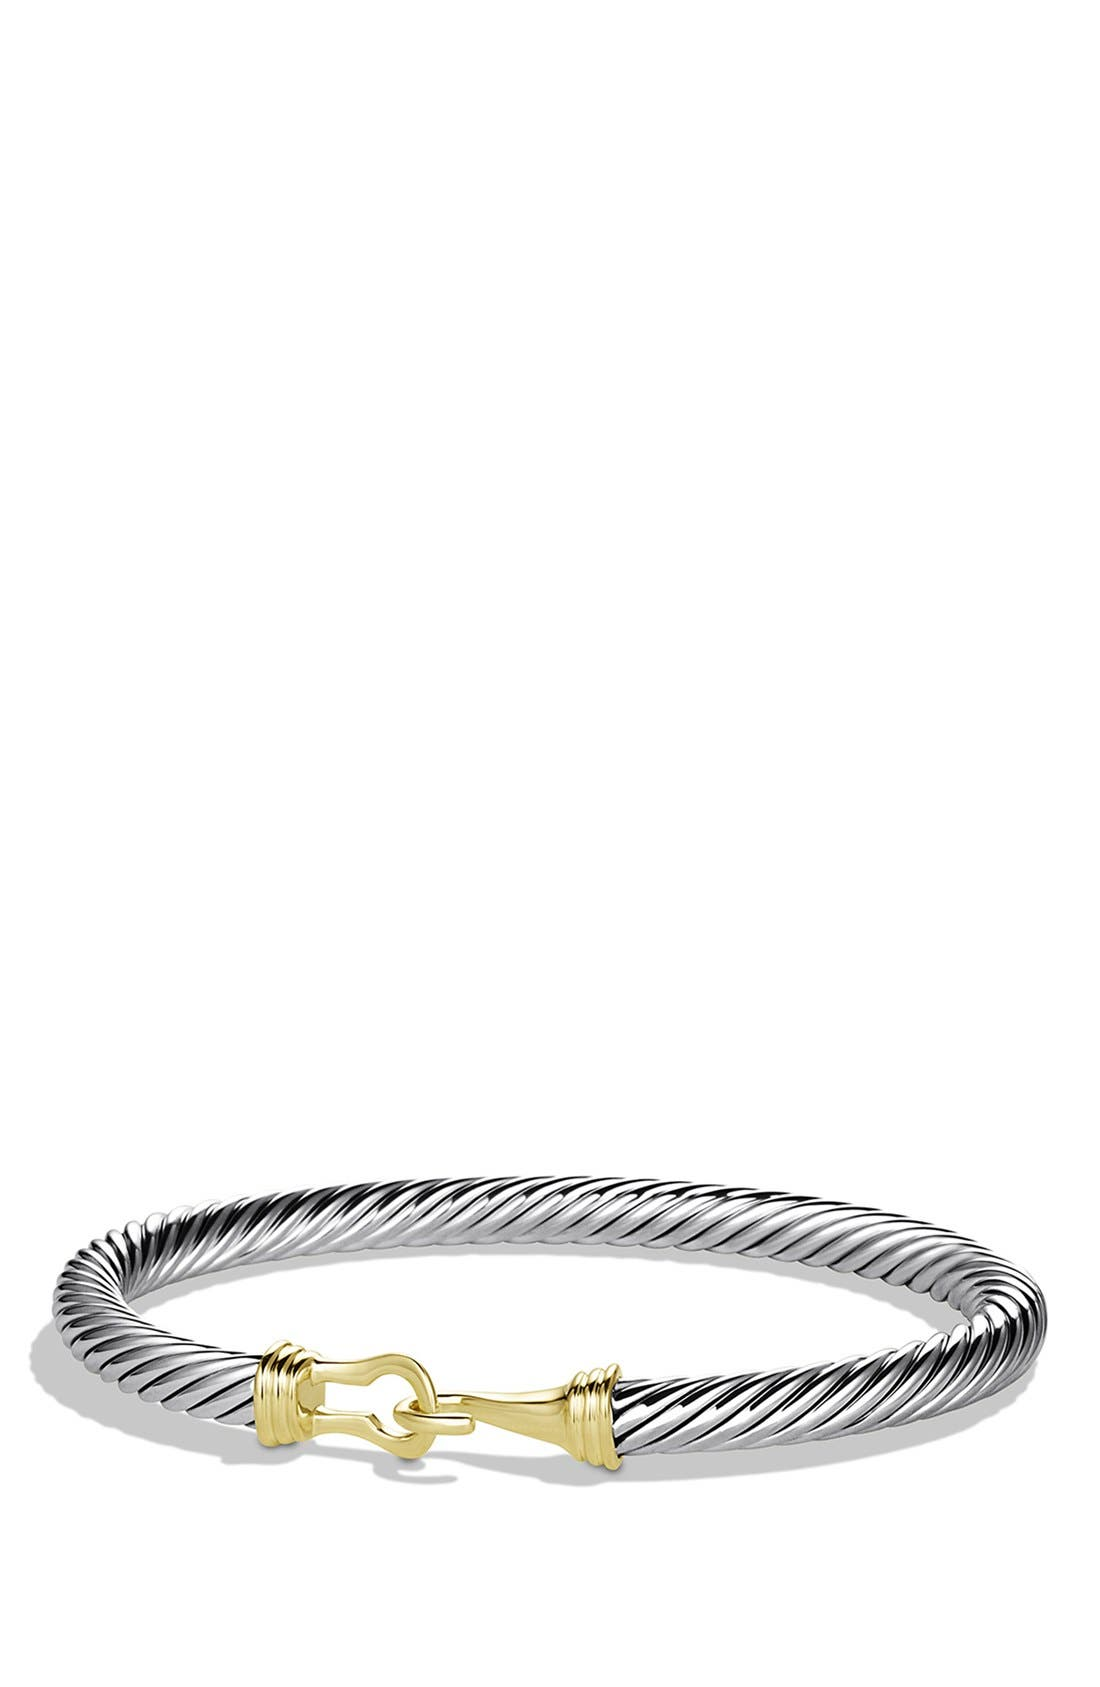 David Yurman 'Cable Buckle' Bracelet with Gold